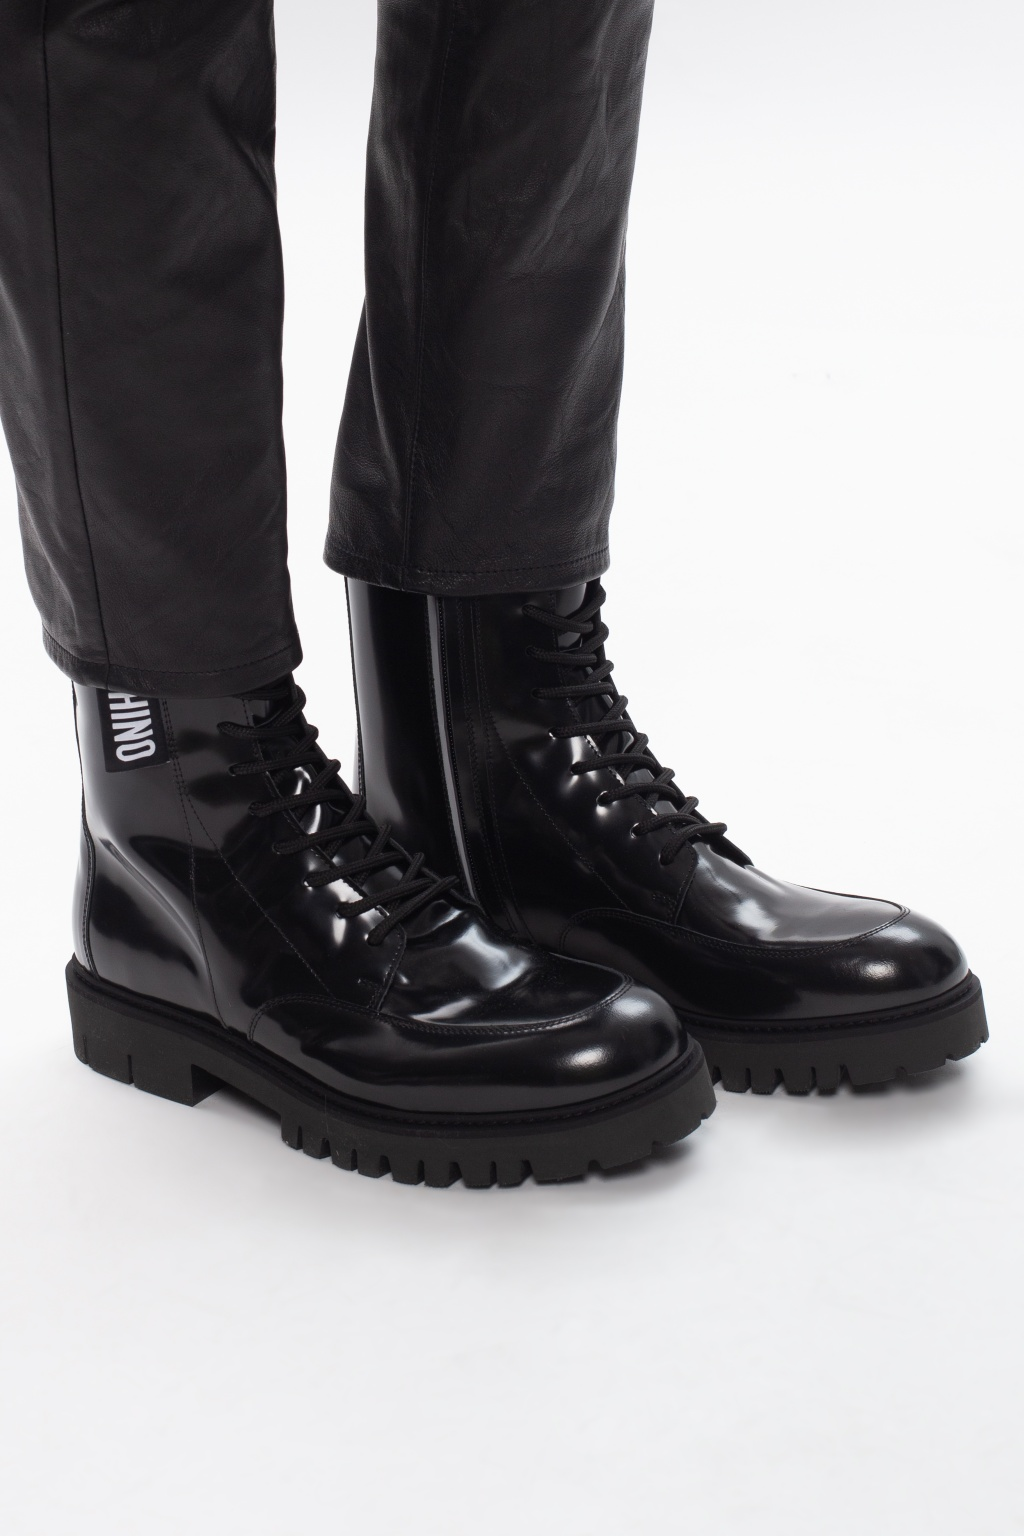 Moschino Leather boots